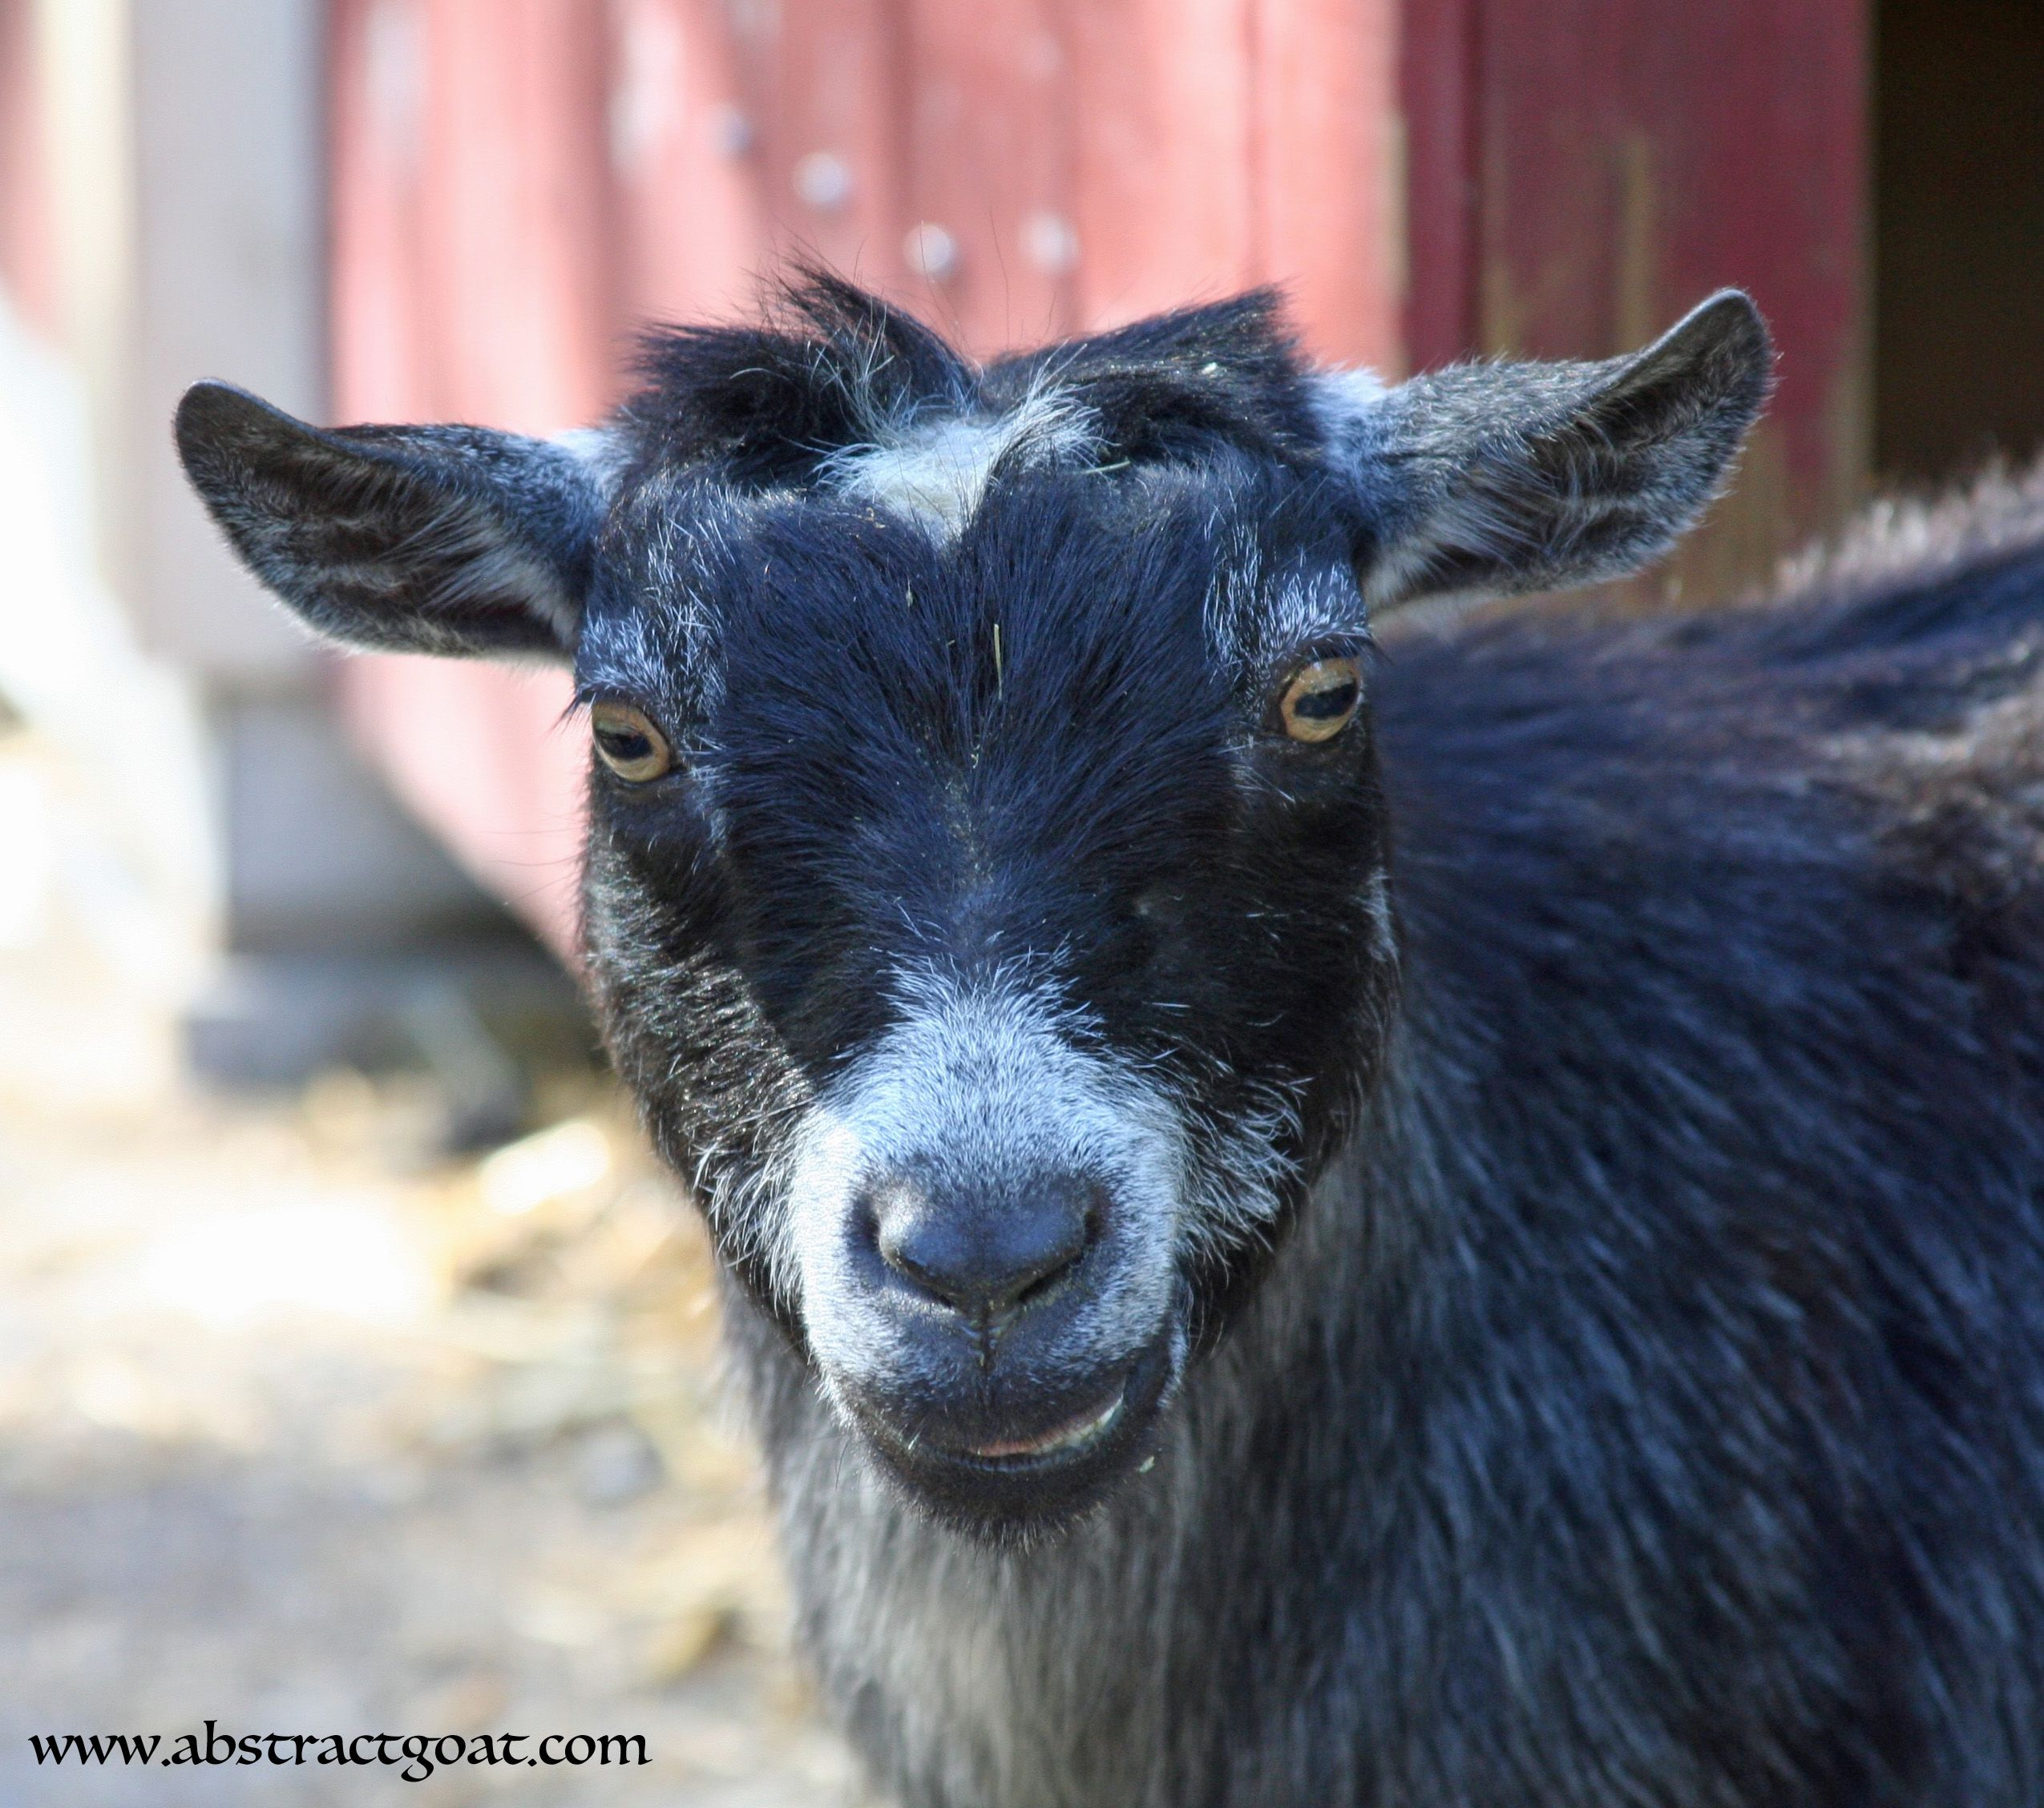 Image by Abstract Goat on Pygmy Goats Barnyard animals